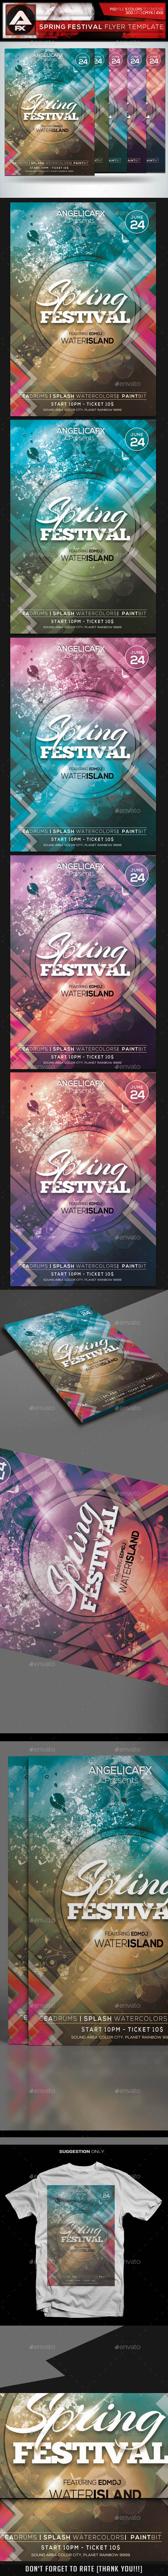 GraphicRiver Spring Festival Flyer Template 10694904